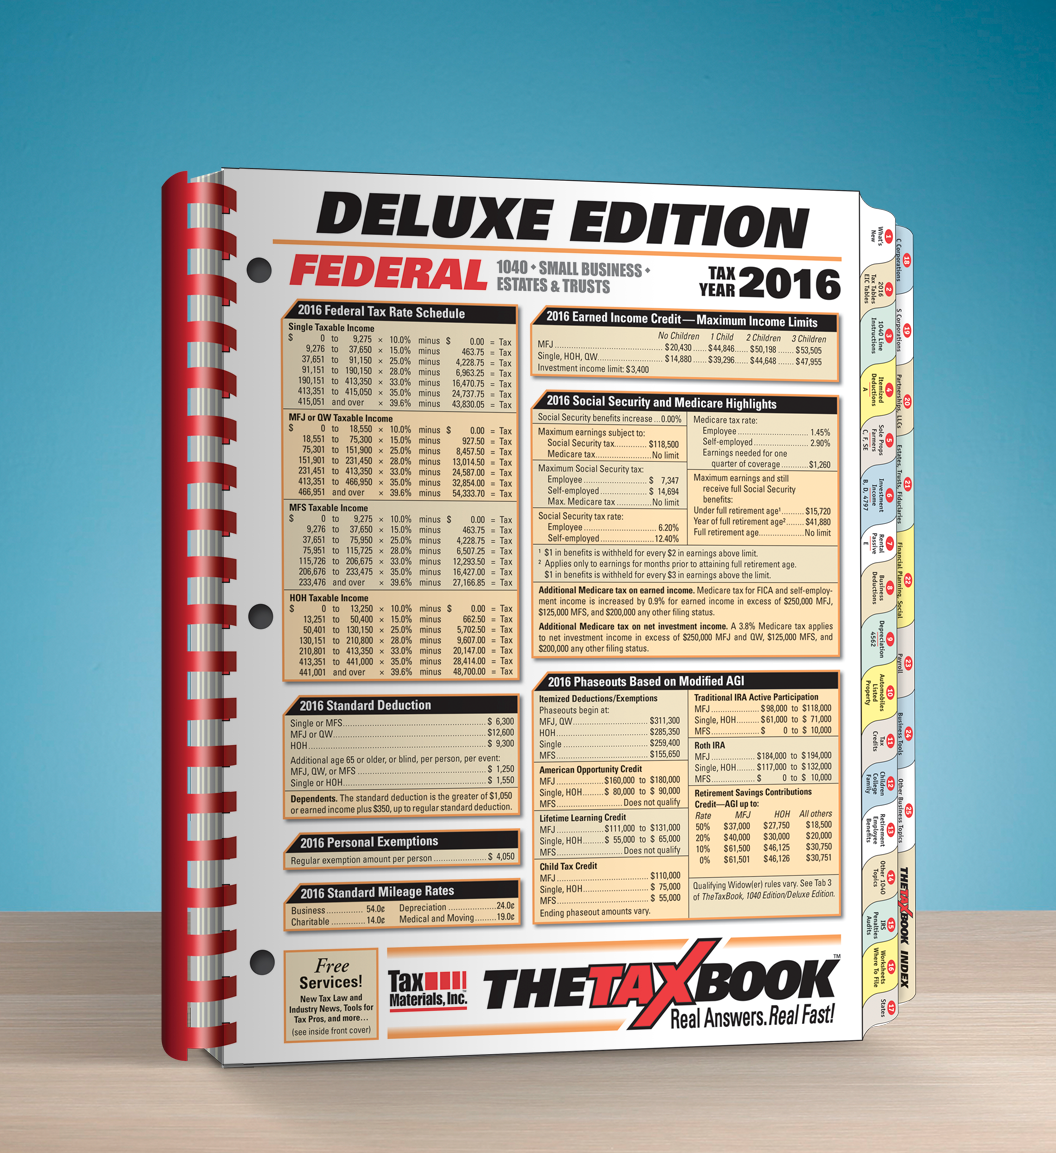 TheTaxBook Deluxe Edition Fast Answer Tax Book (2016) - #3682